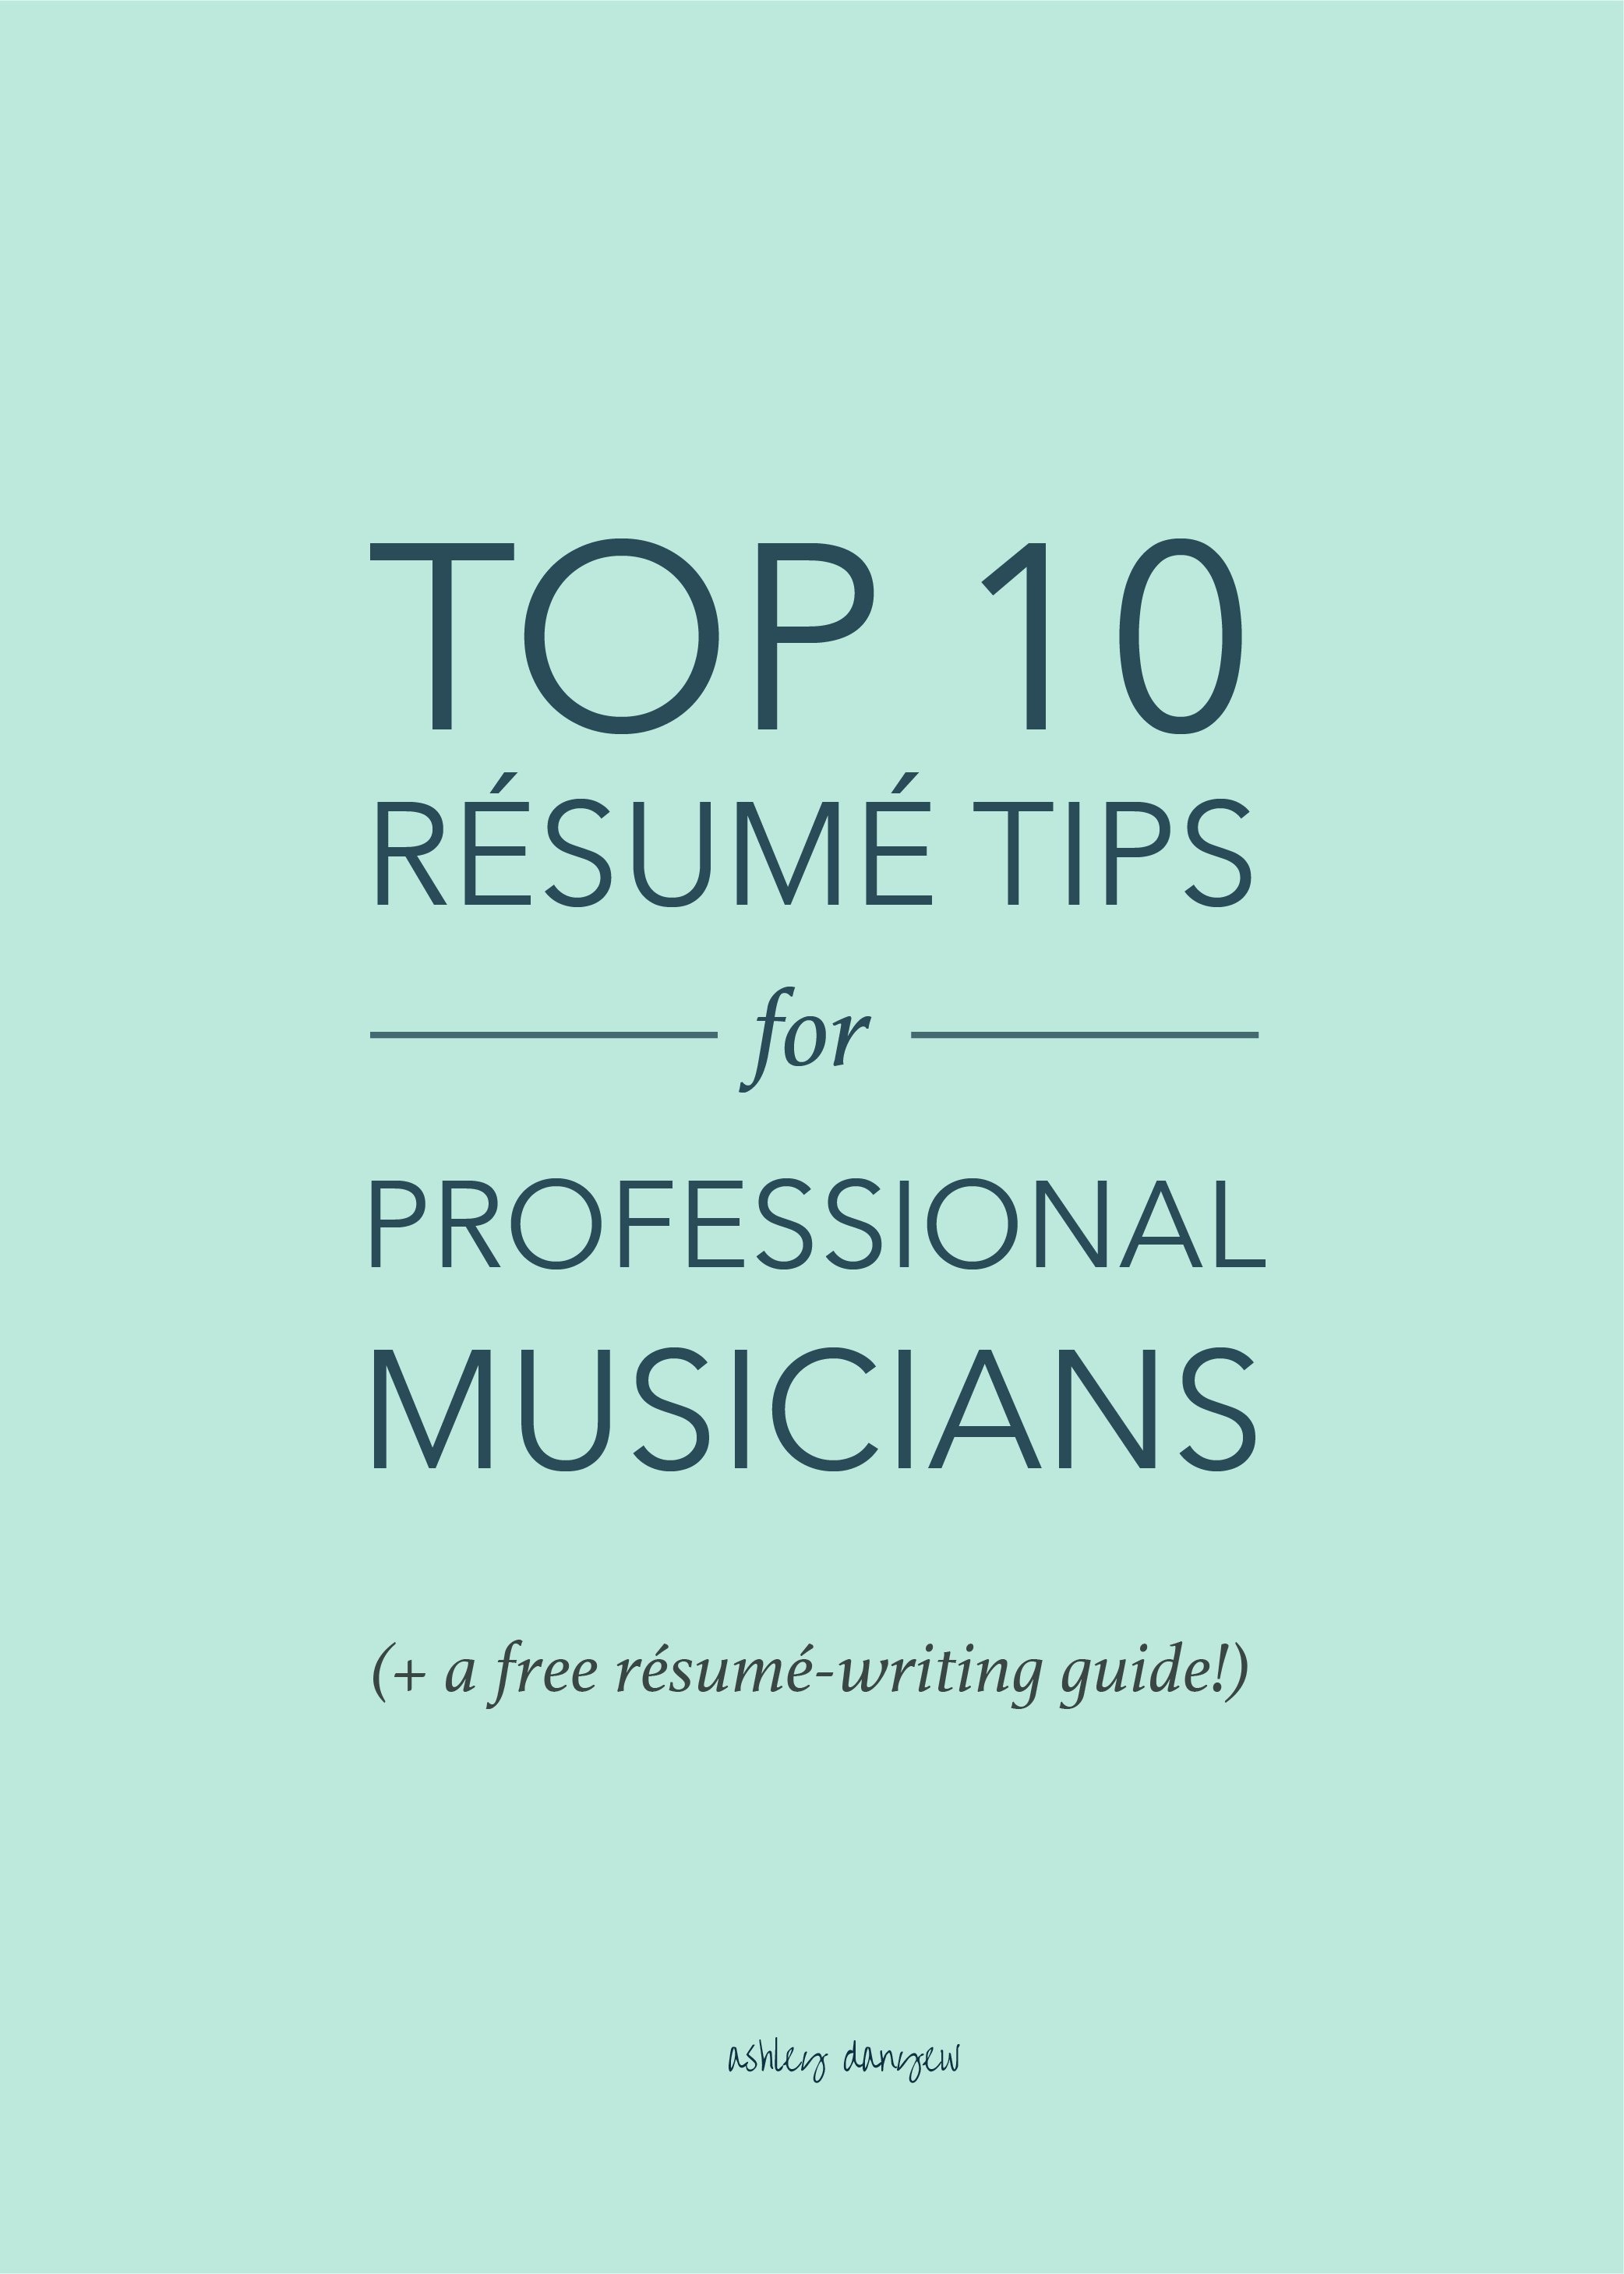 Top 10 Resume Tips For Professional Musicians Ashley Danyew